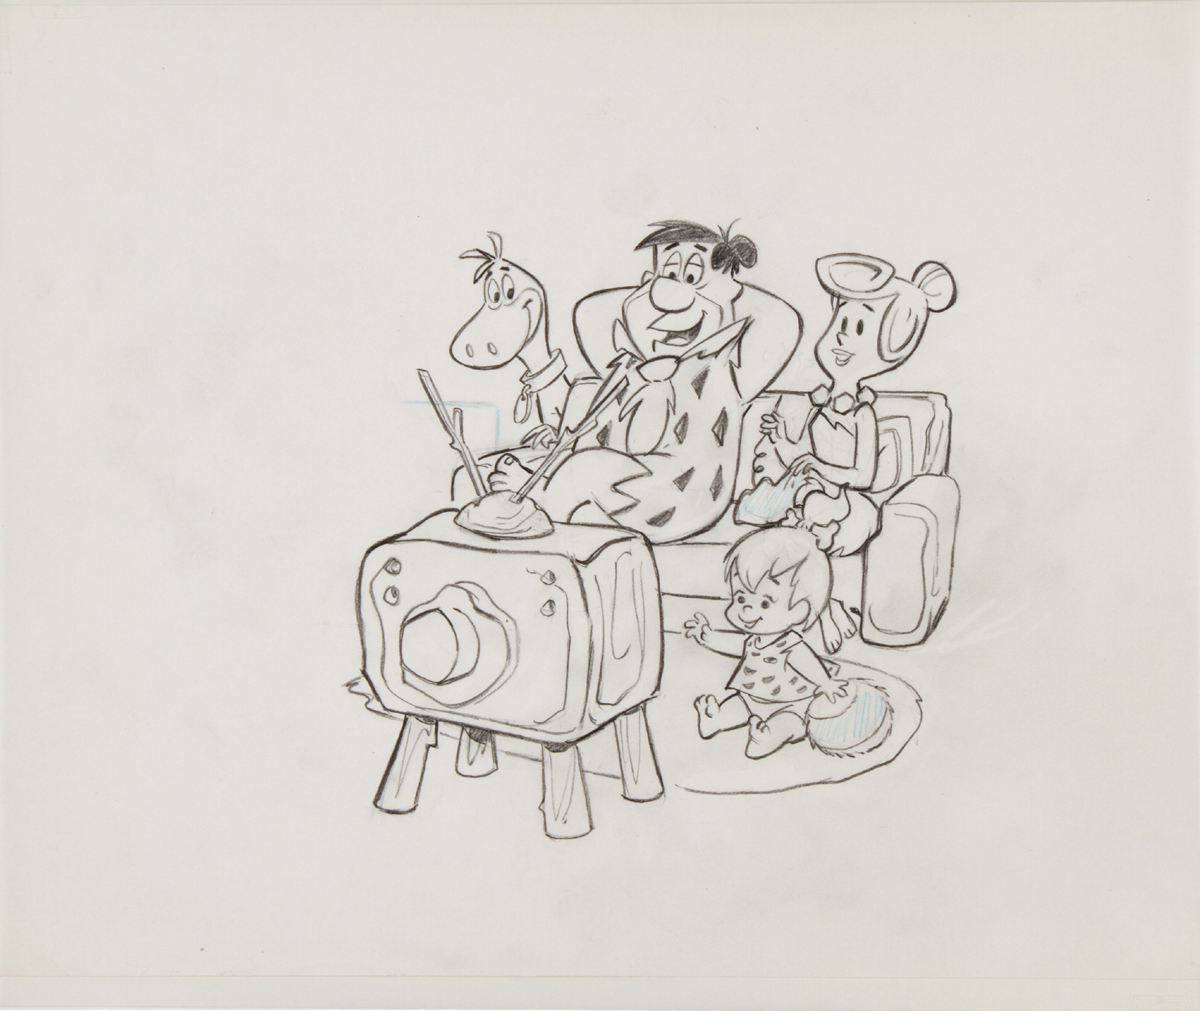 """The Flintstones"" publicity drawing"